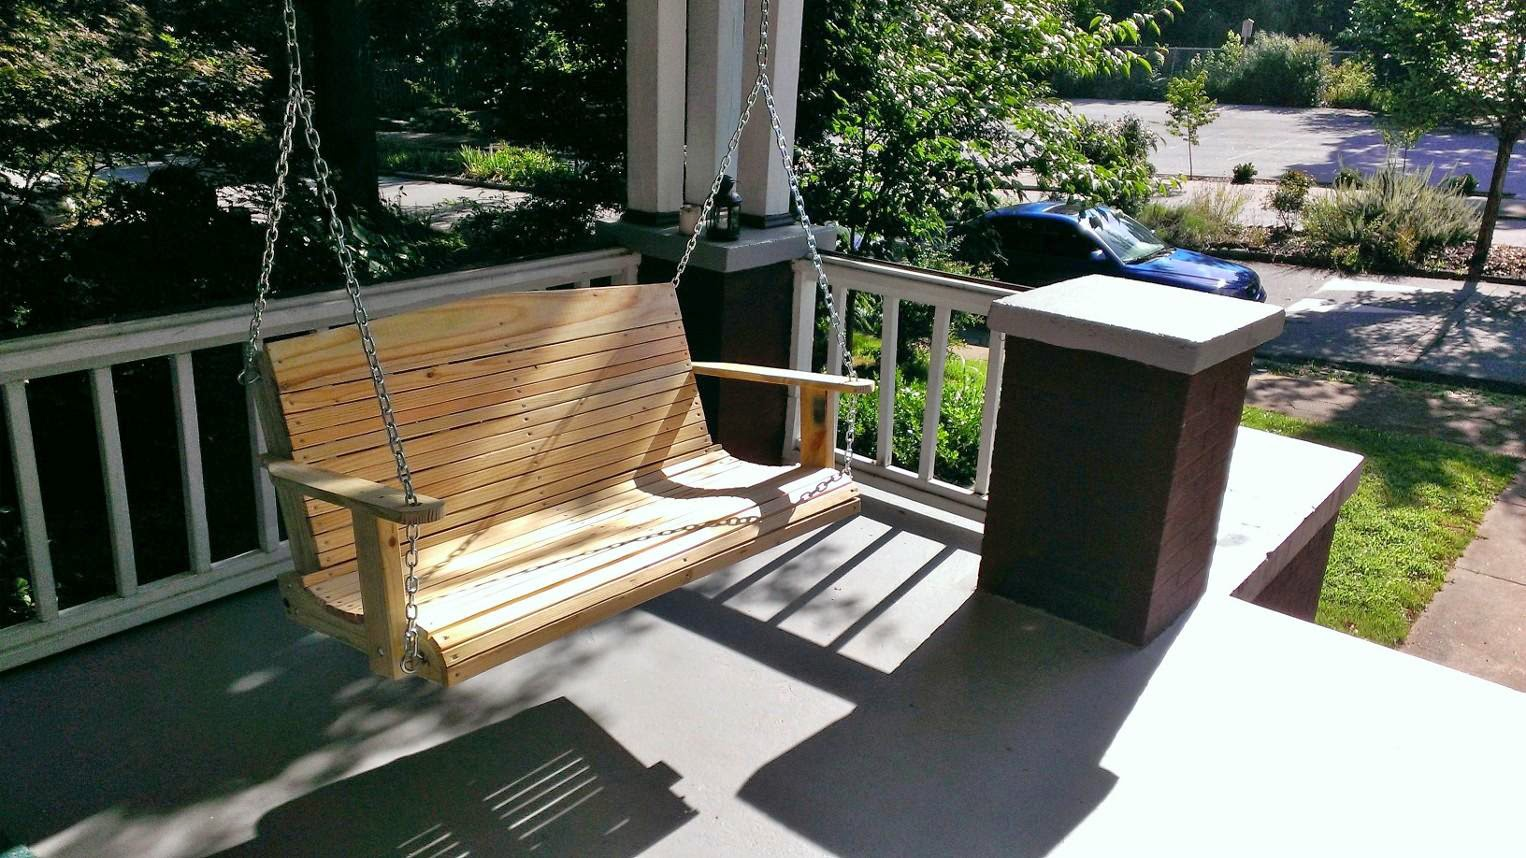 cozy swings 4 39 ft wooden porch swings for sale. Black Bedroom Furniture Sets. Home Design Ideas